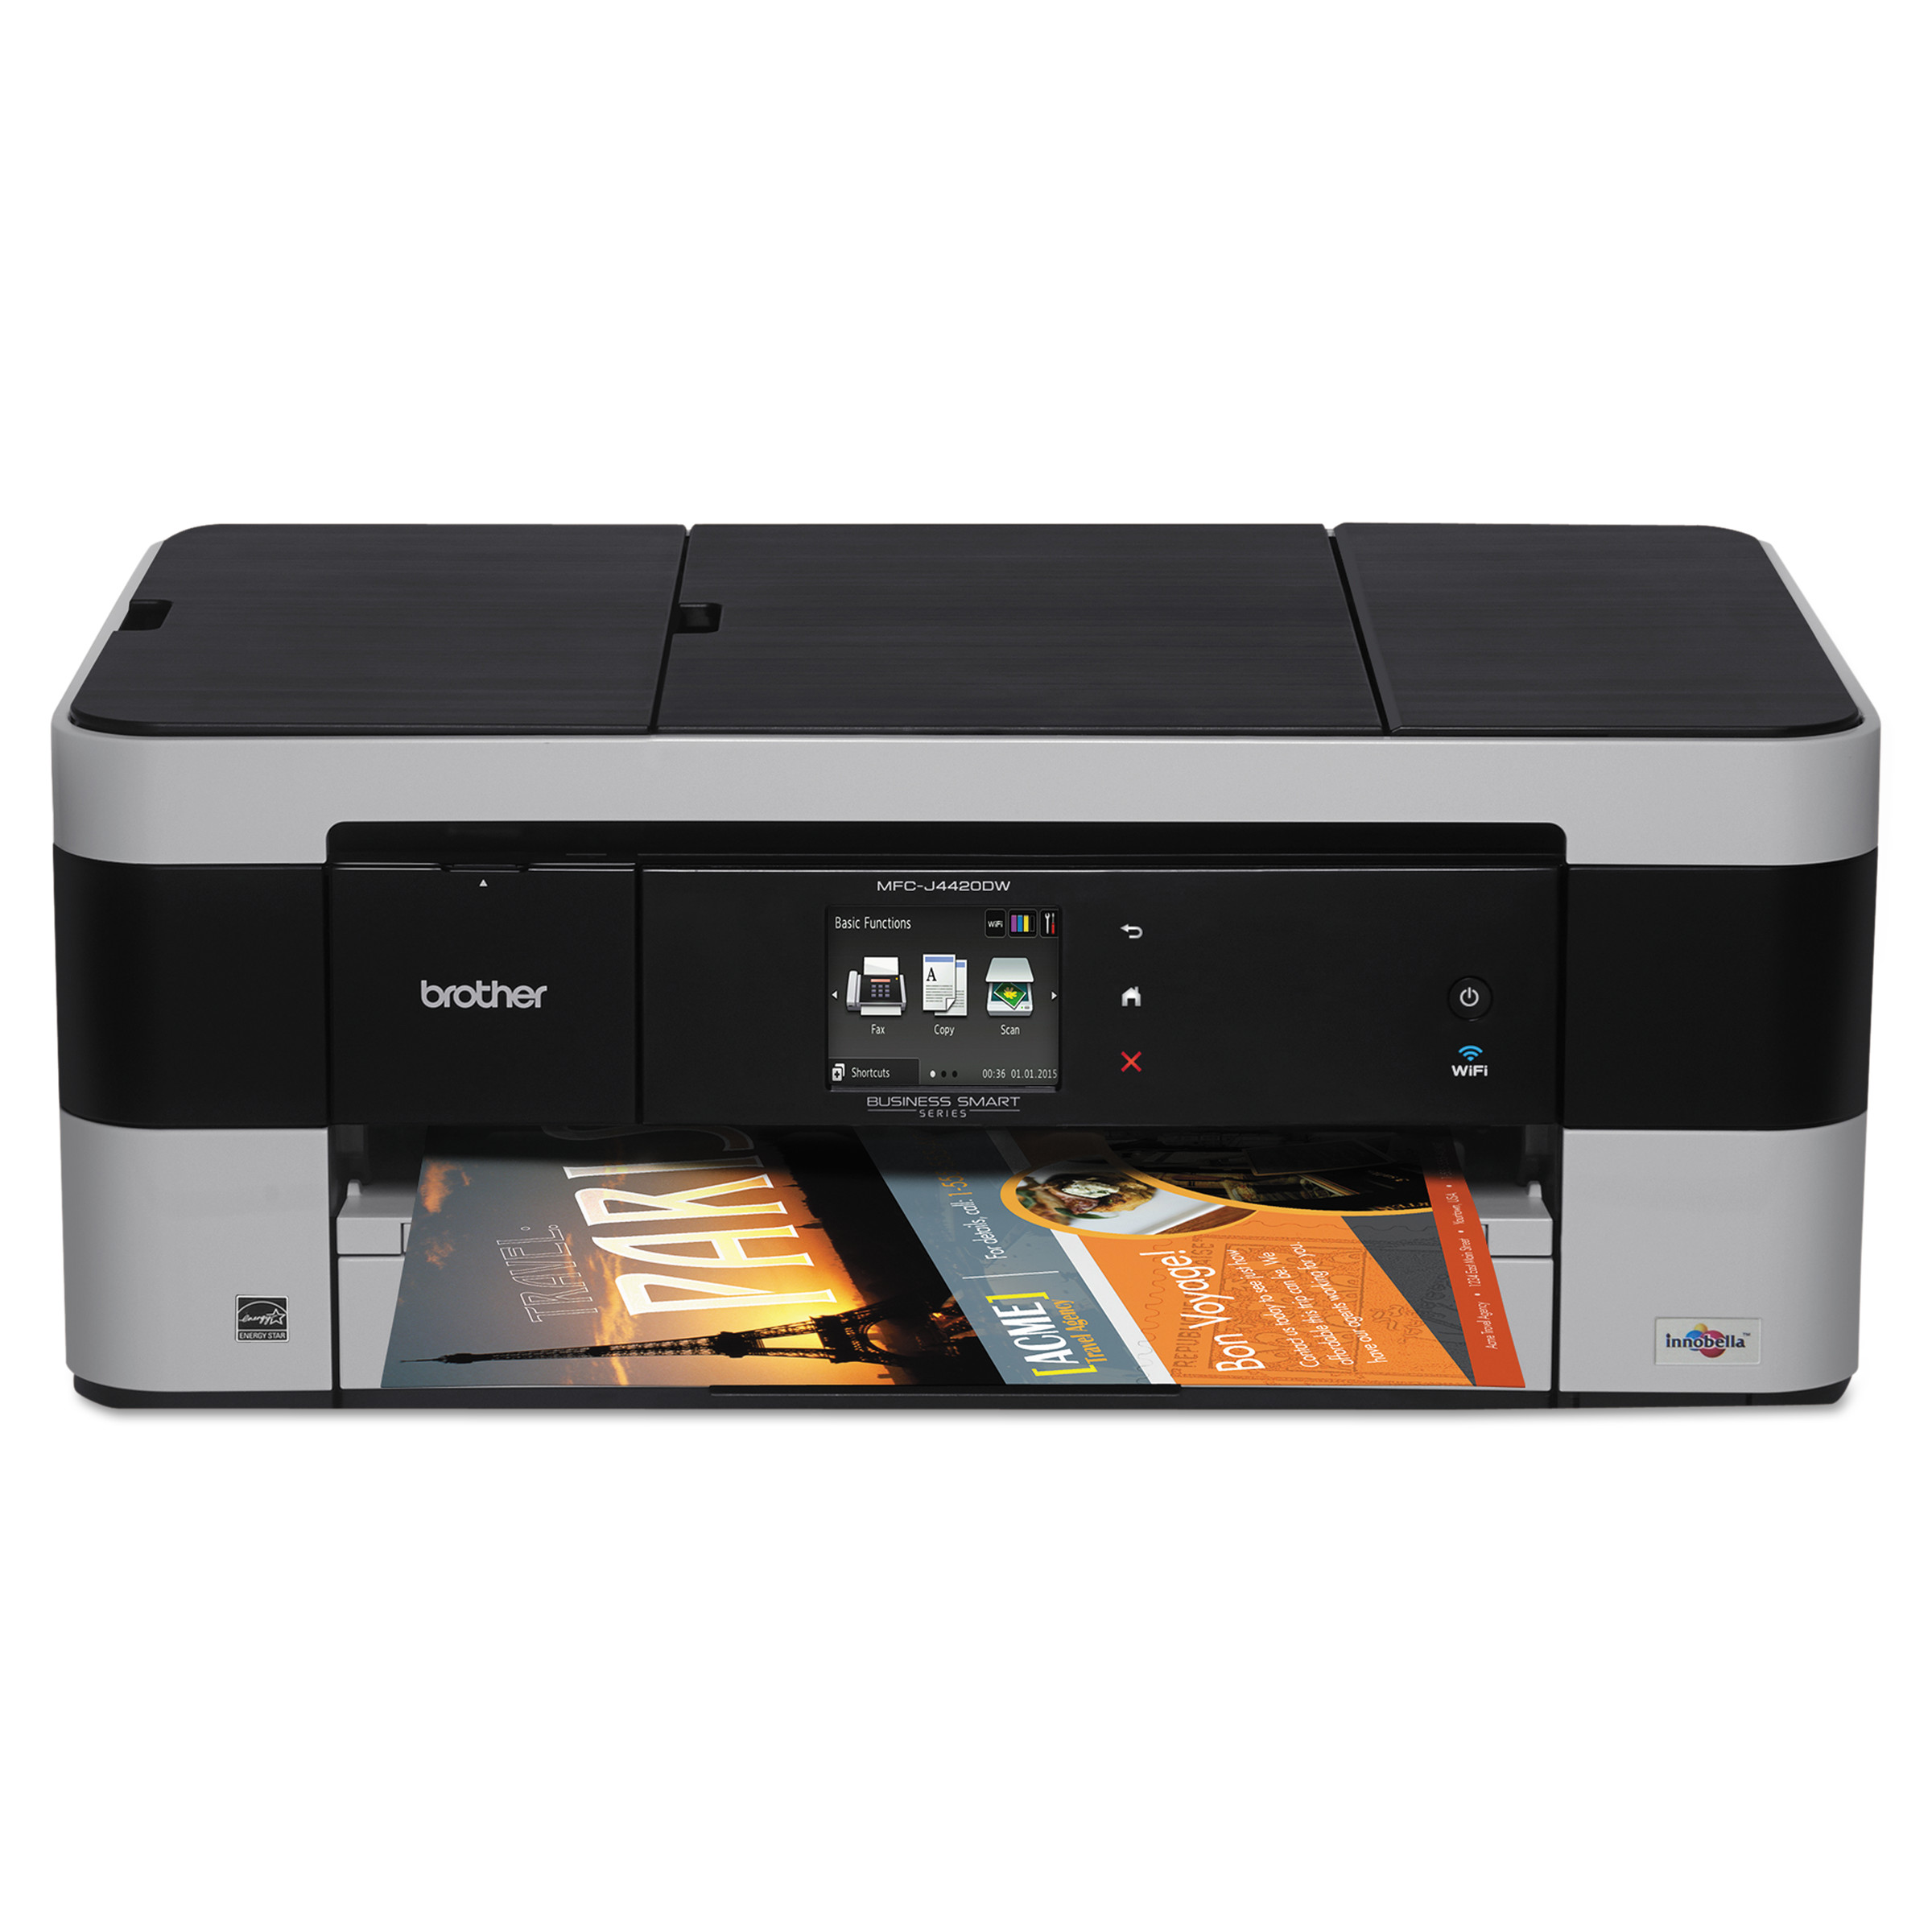 Brother Business Smart MFC-J4420DW Multifunction Inkjet Printer, Copy/Fax/Print/Scan